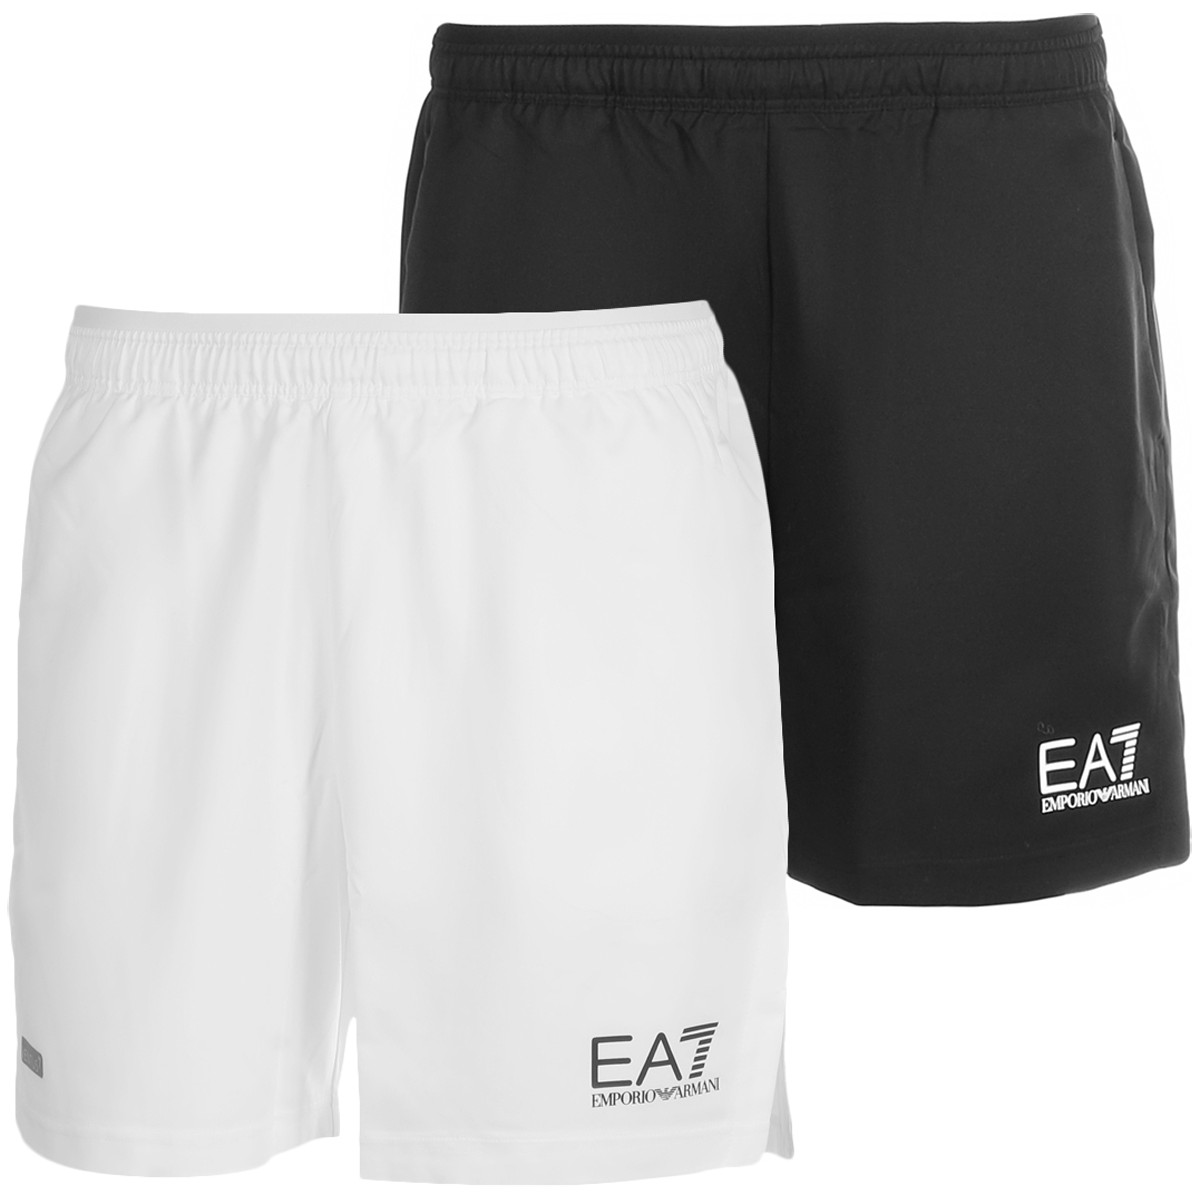 SHORT EA7 TENNIS PRO DYNAMIC